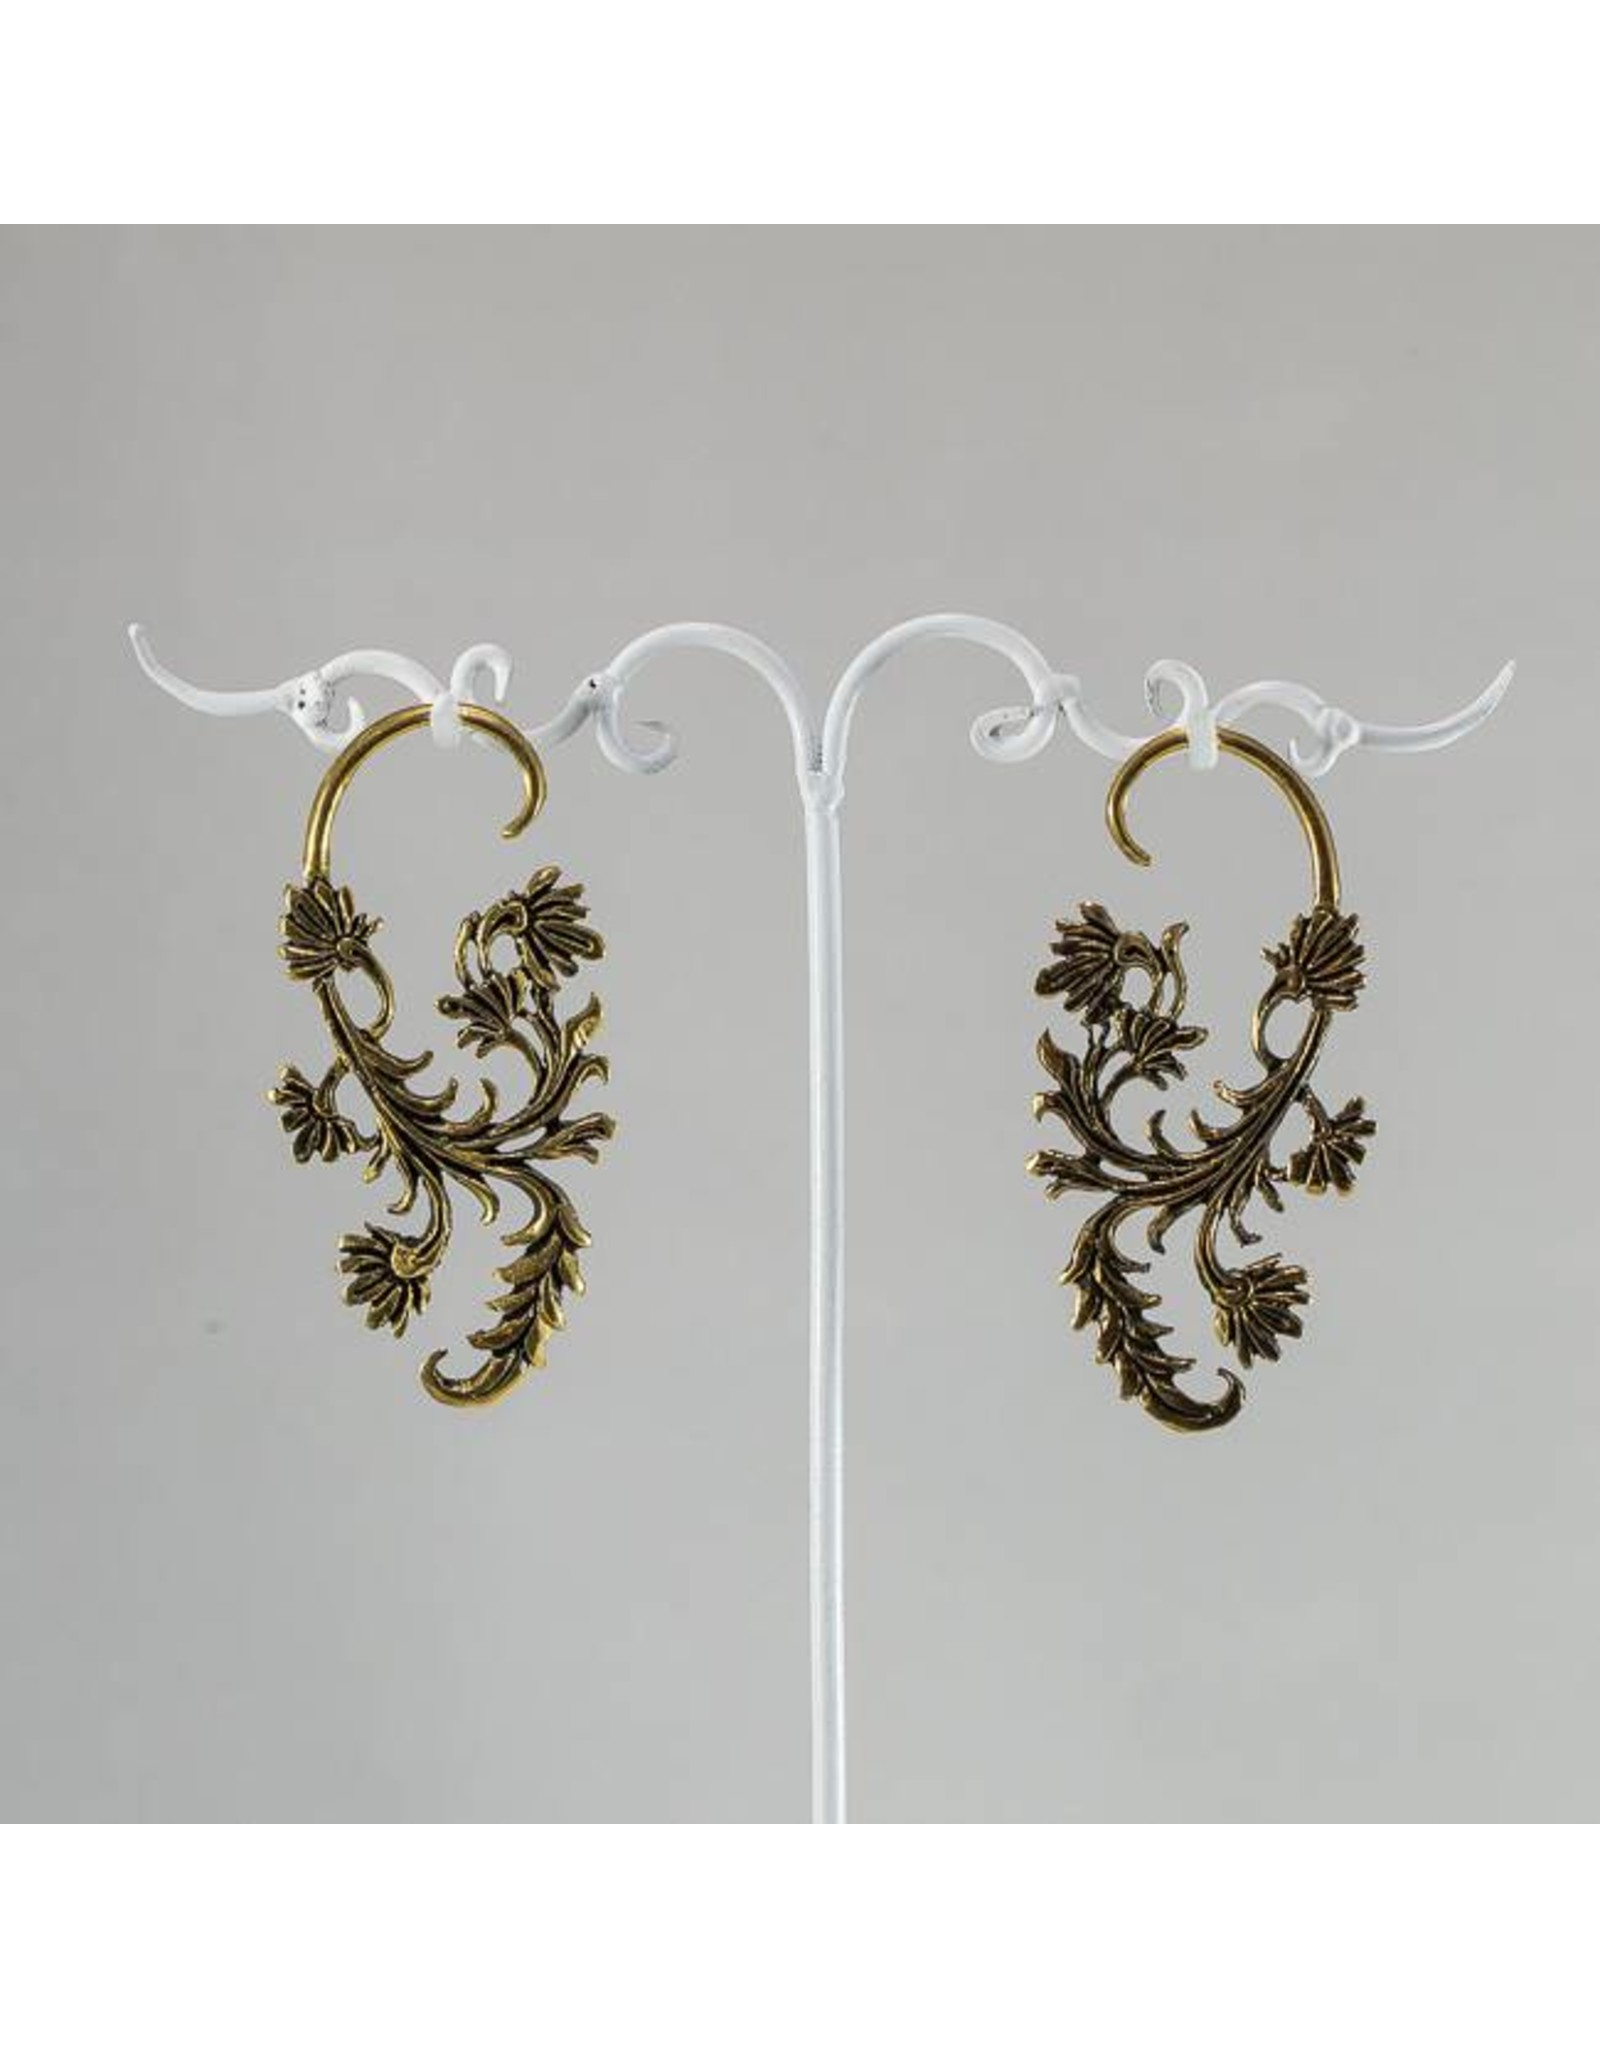 12g Gold Plated Floral Hangers